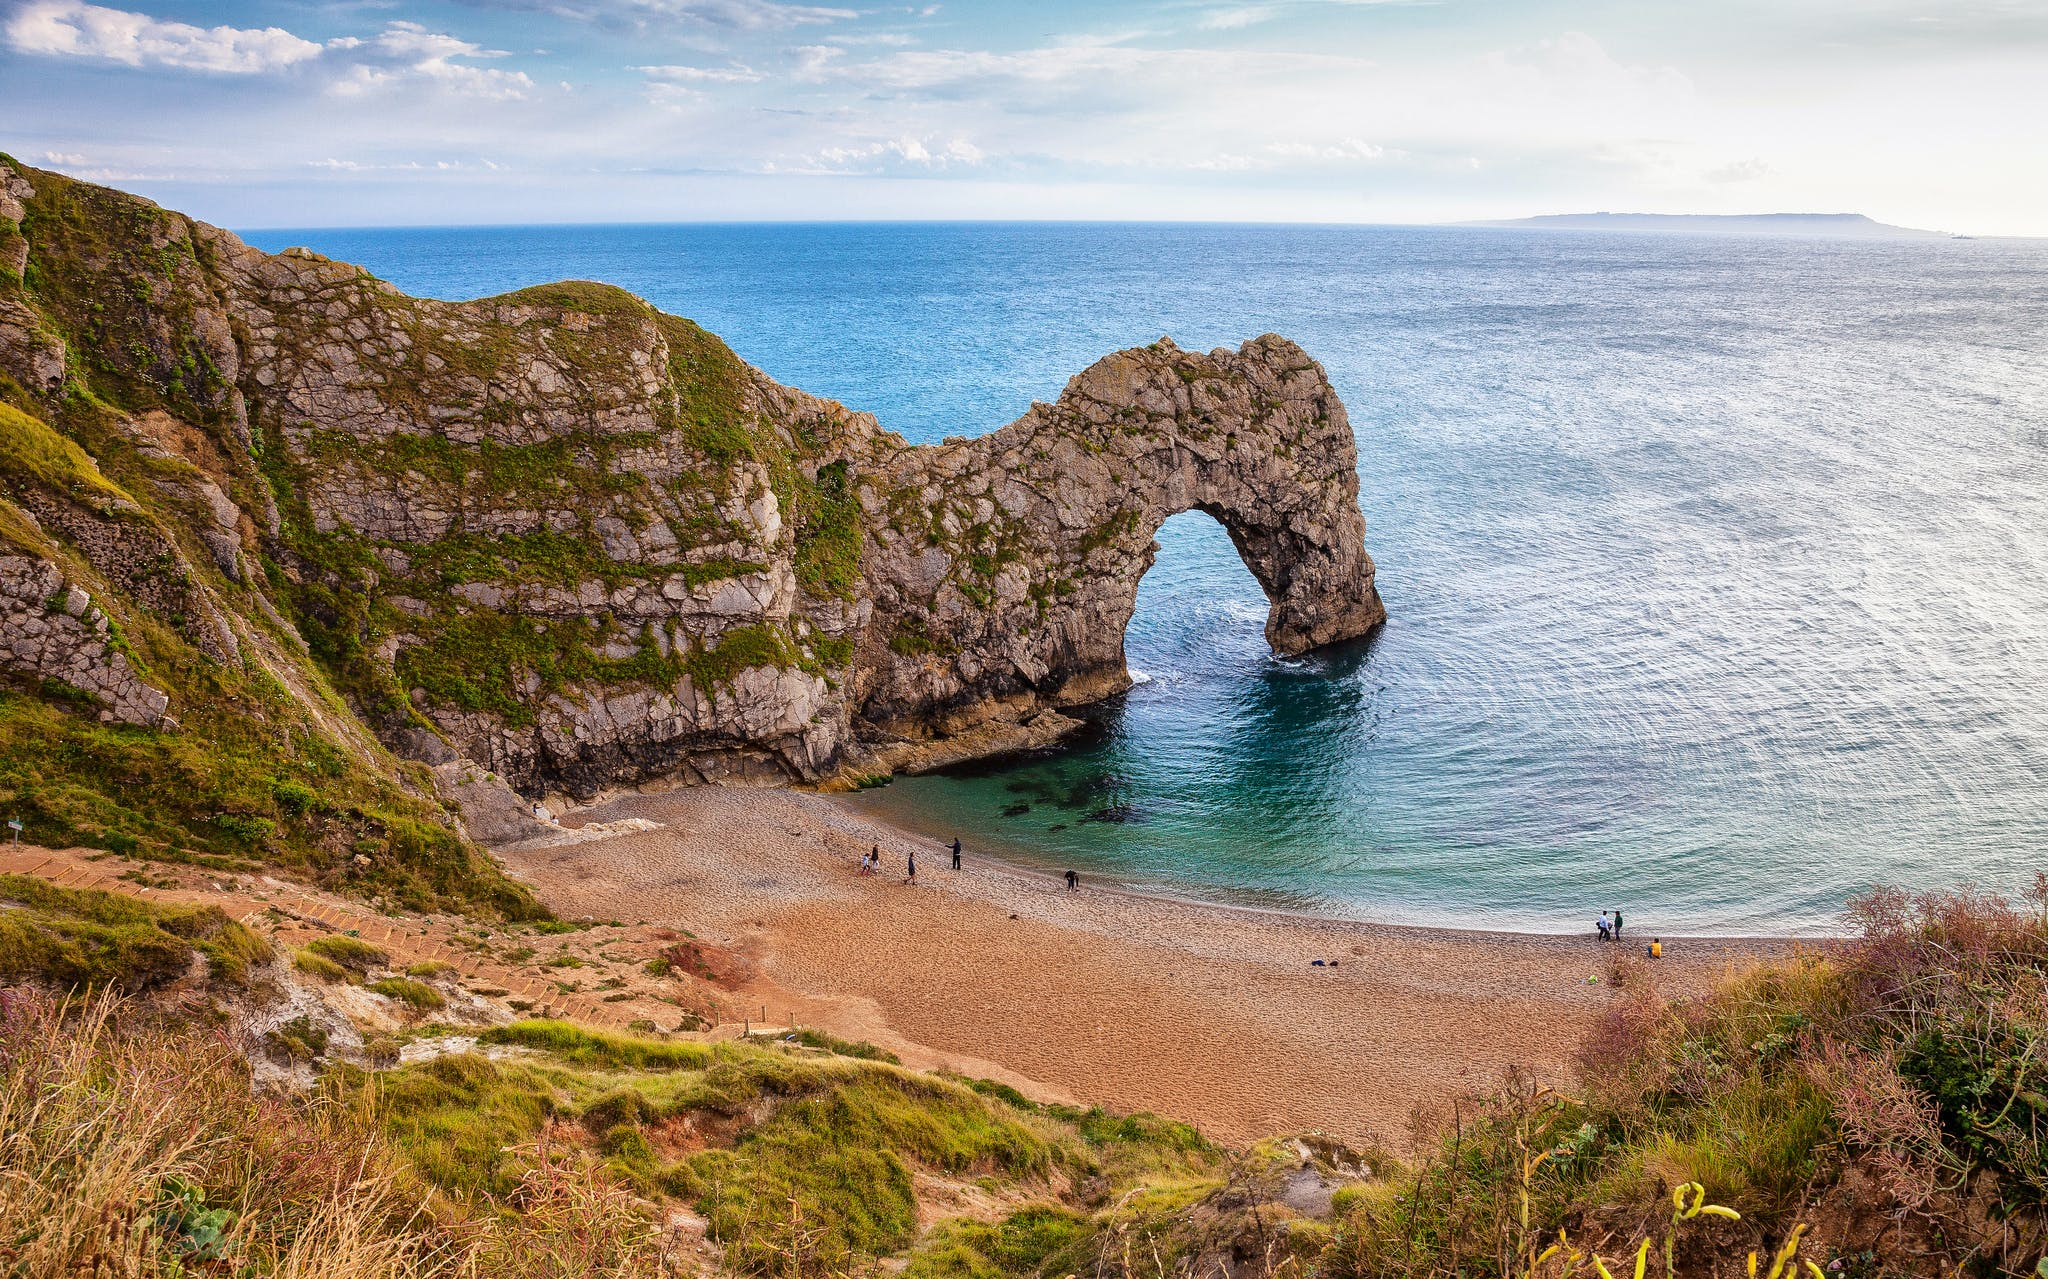 Best Day Trips from London - 3-Day Stonehenge, Glastonbury, Bath and South West Coast Tour from London